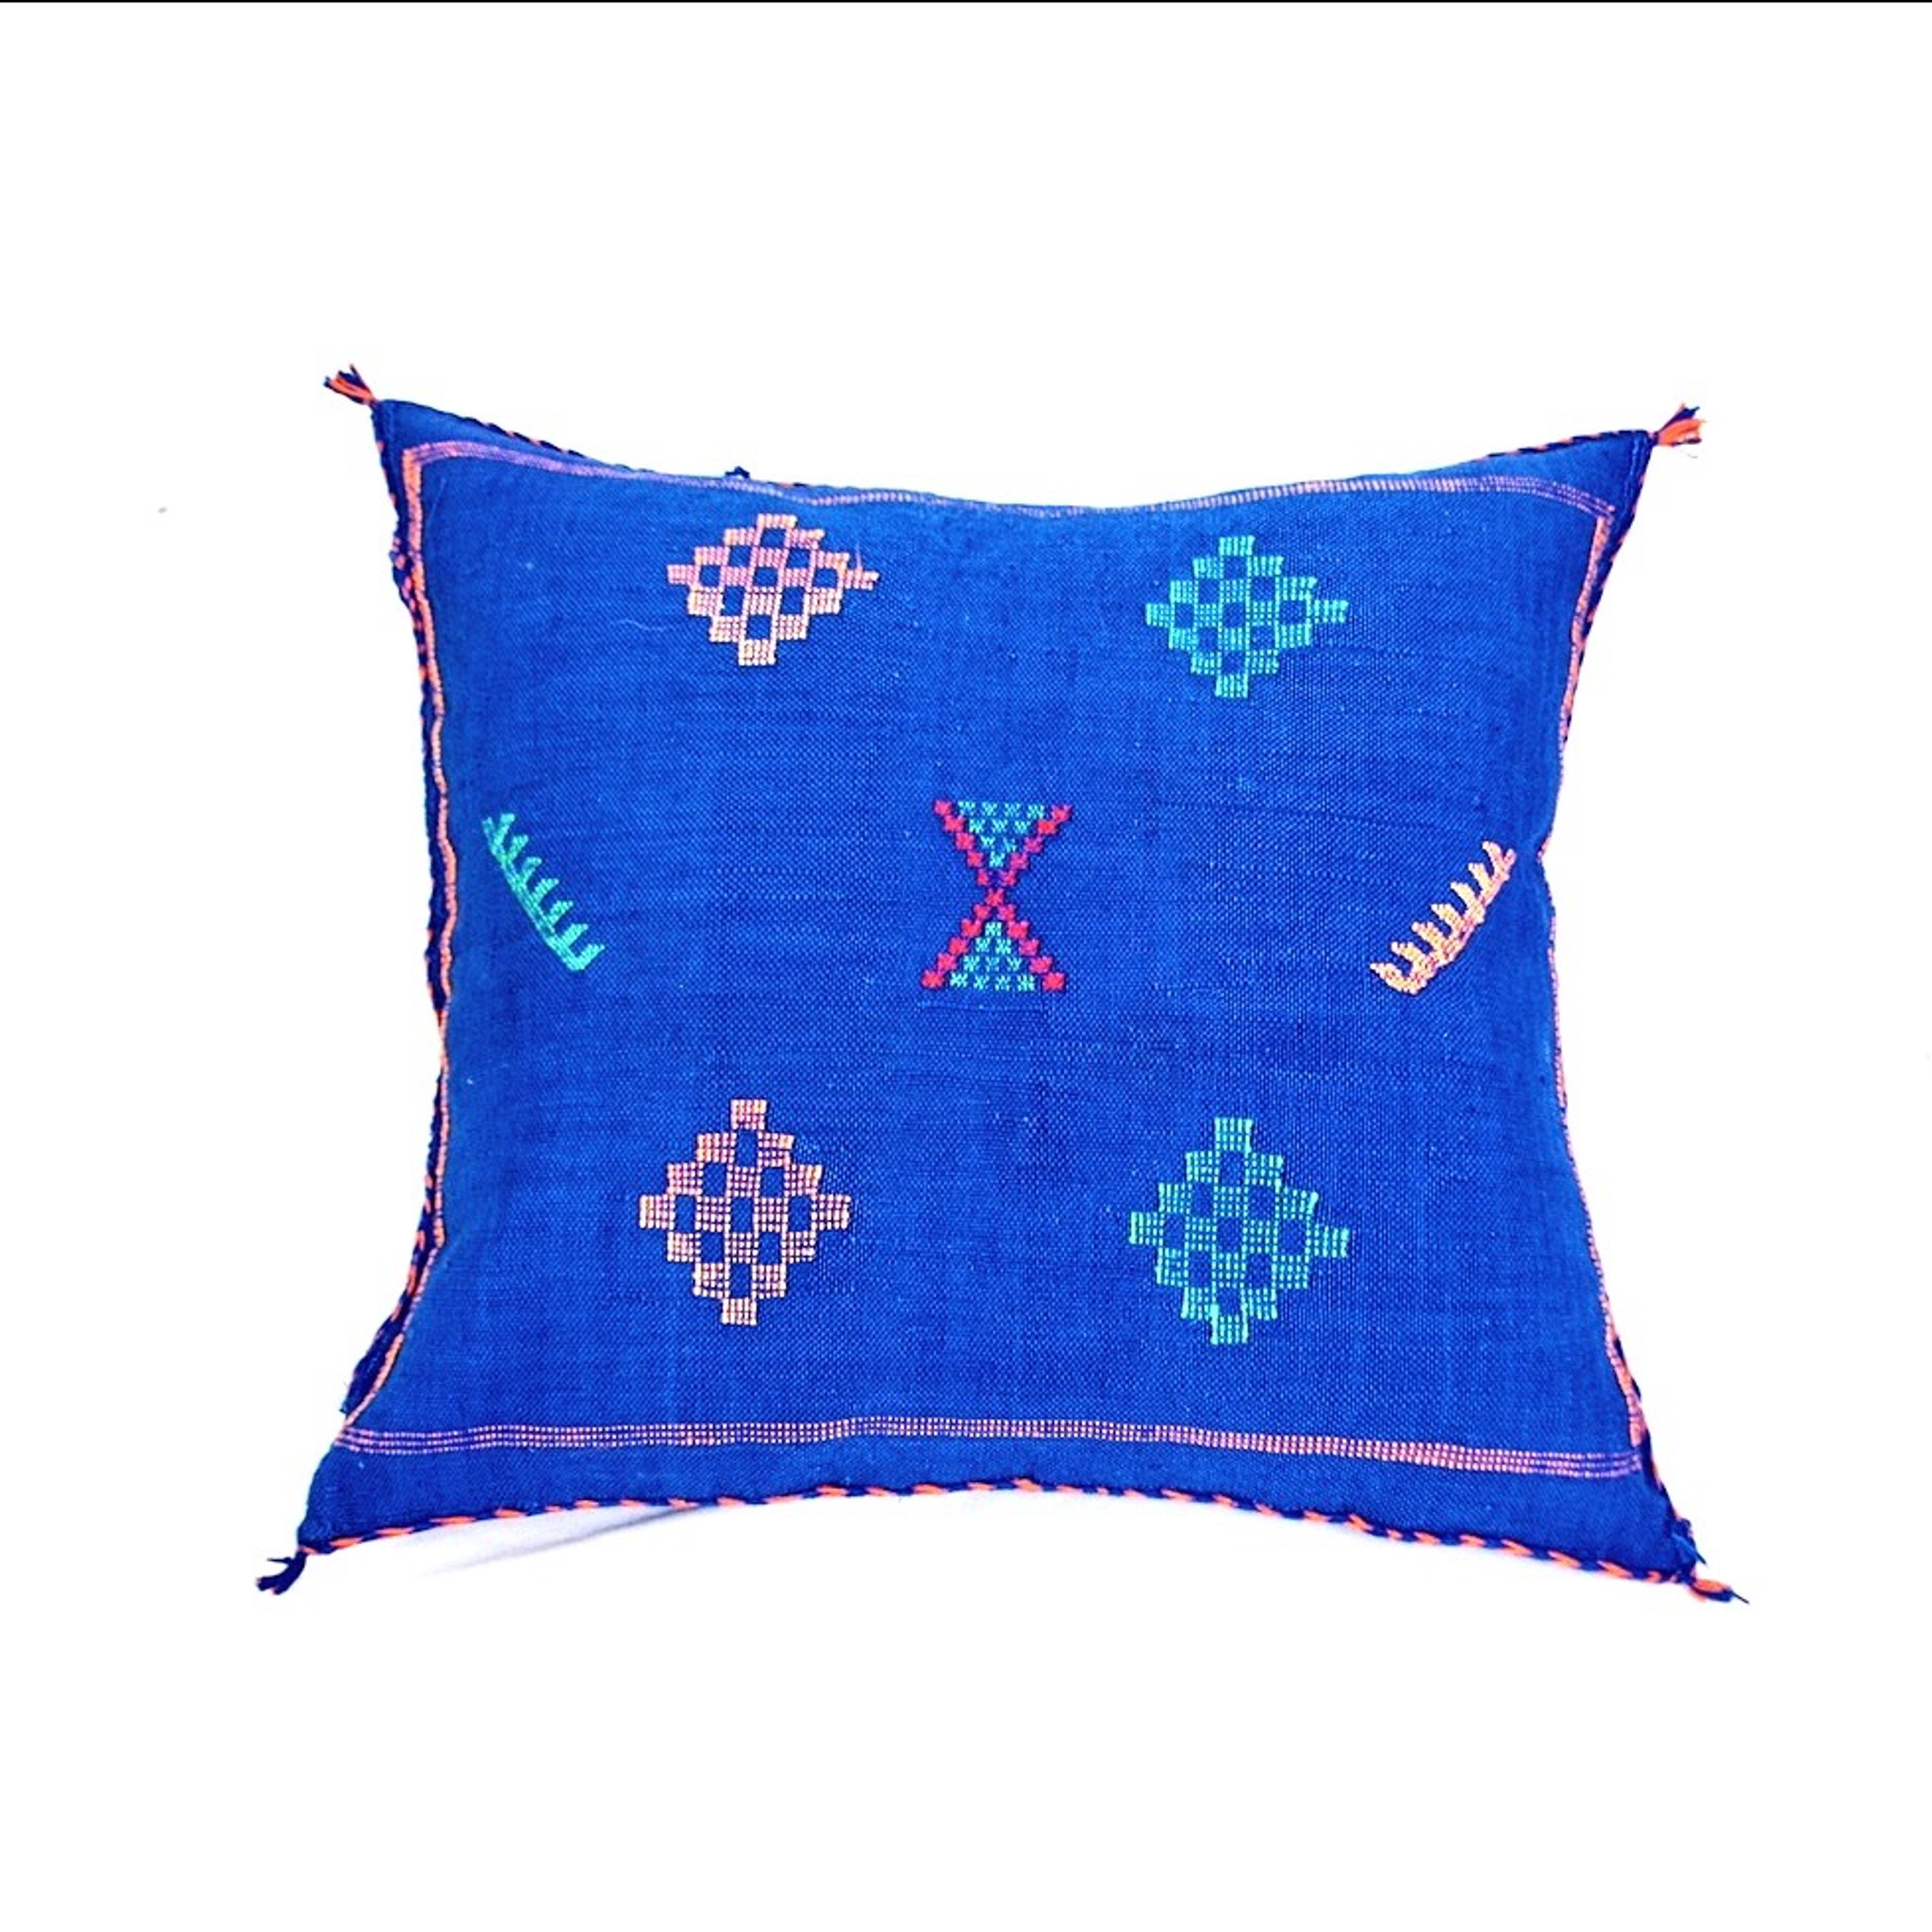 Sabra Throw Pillow, Moroccan Store Pillow | Sheherazade® Home